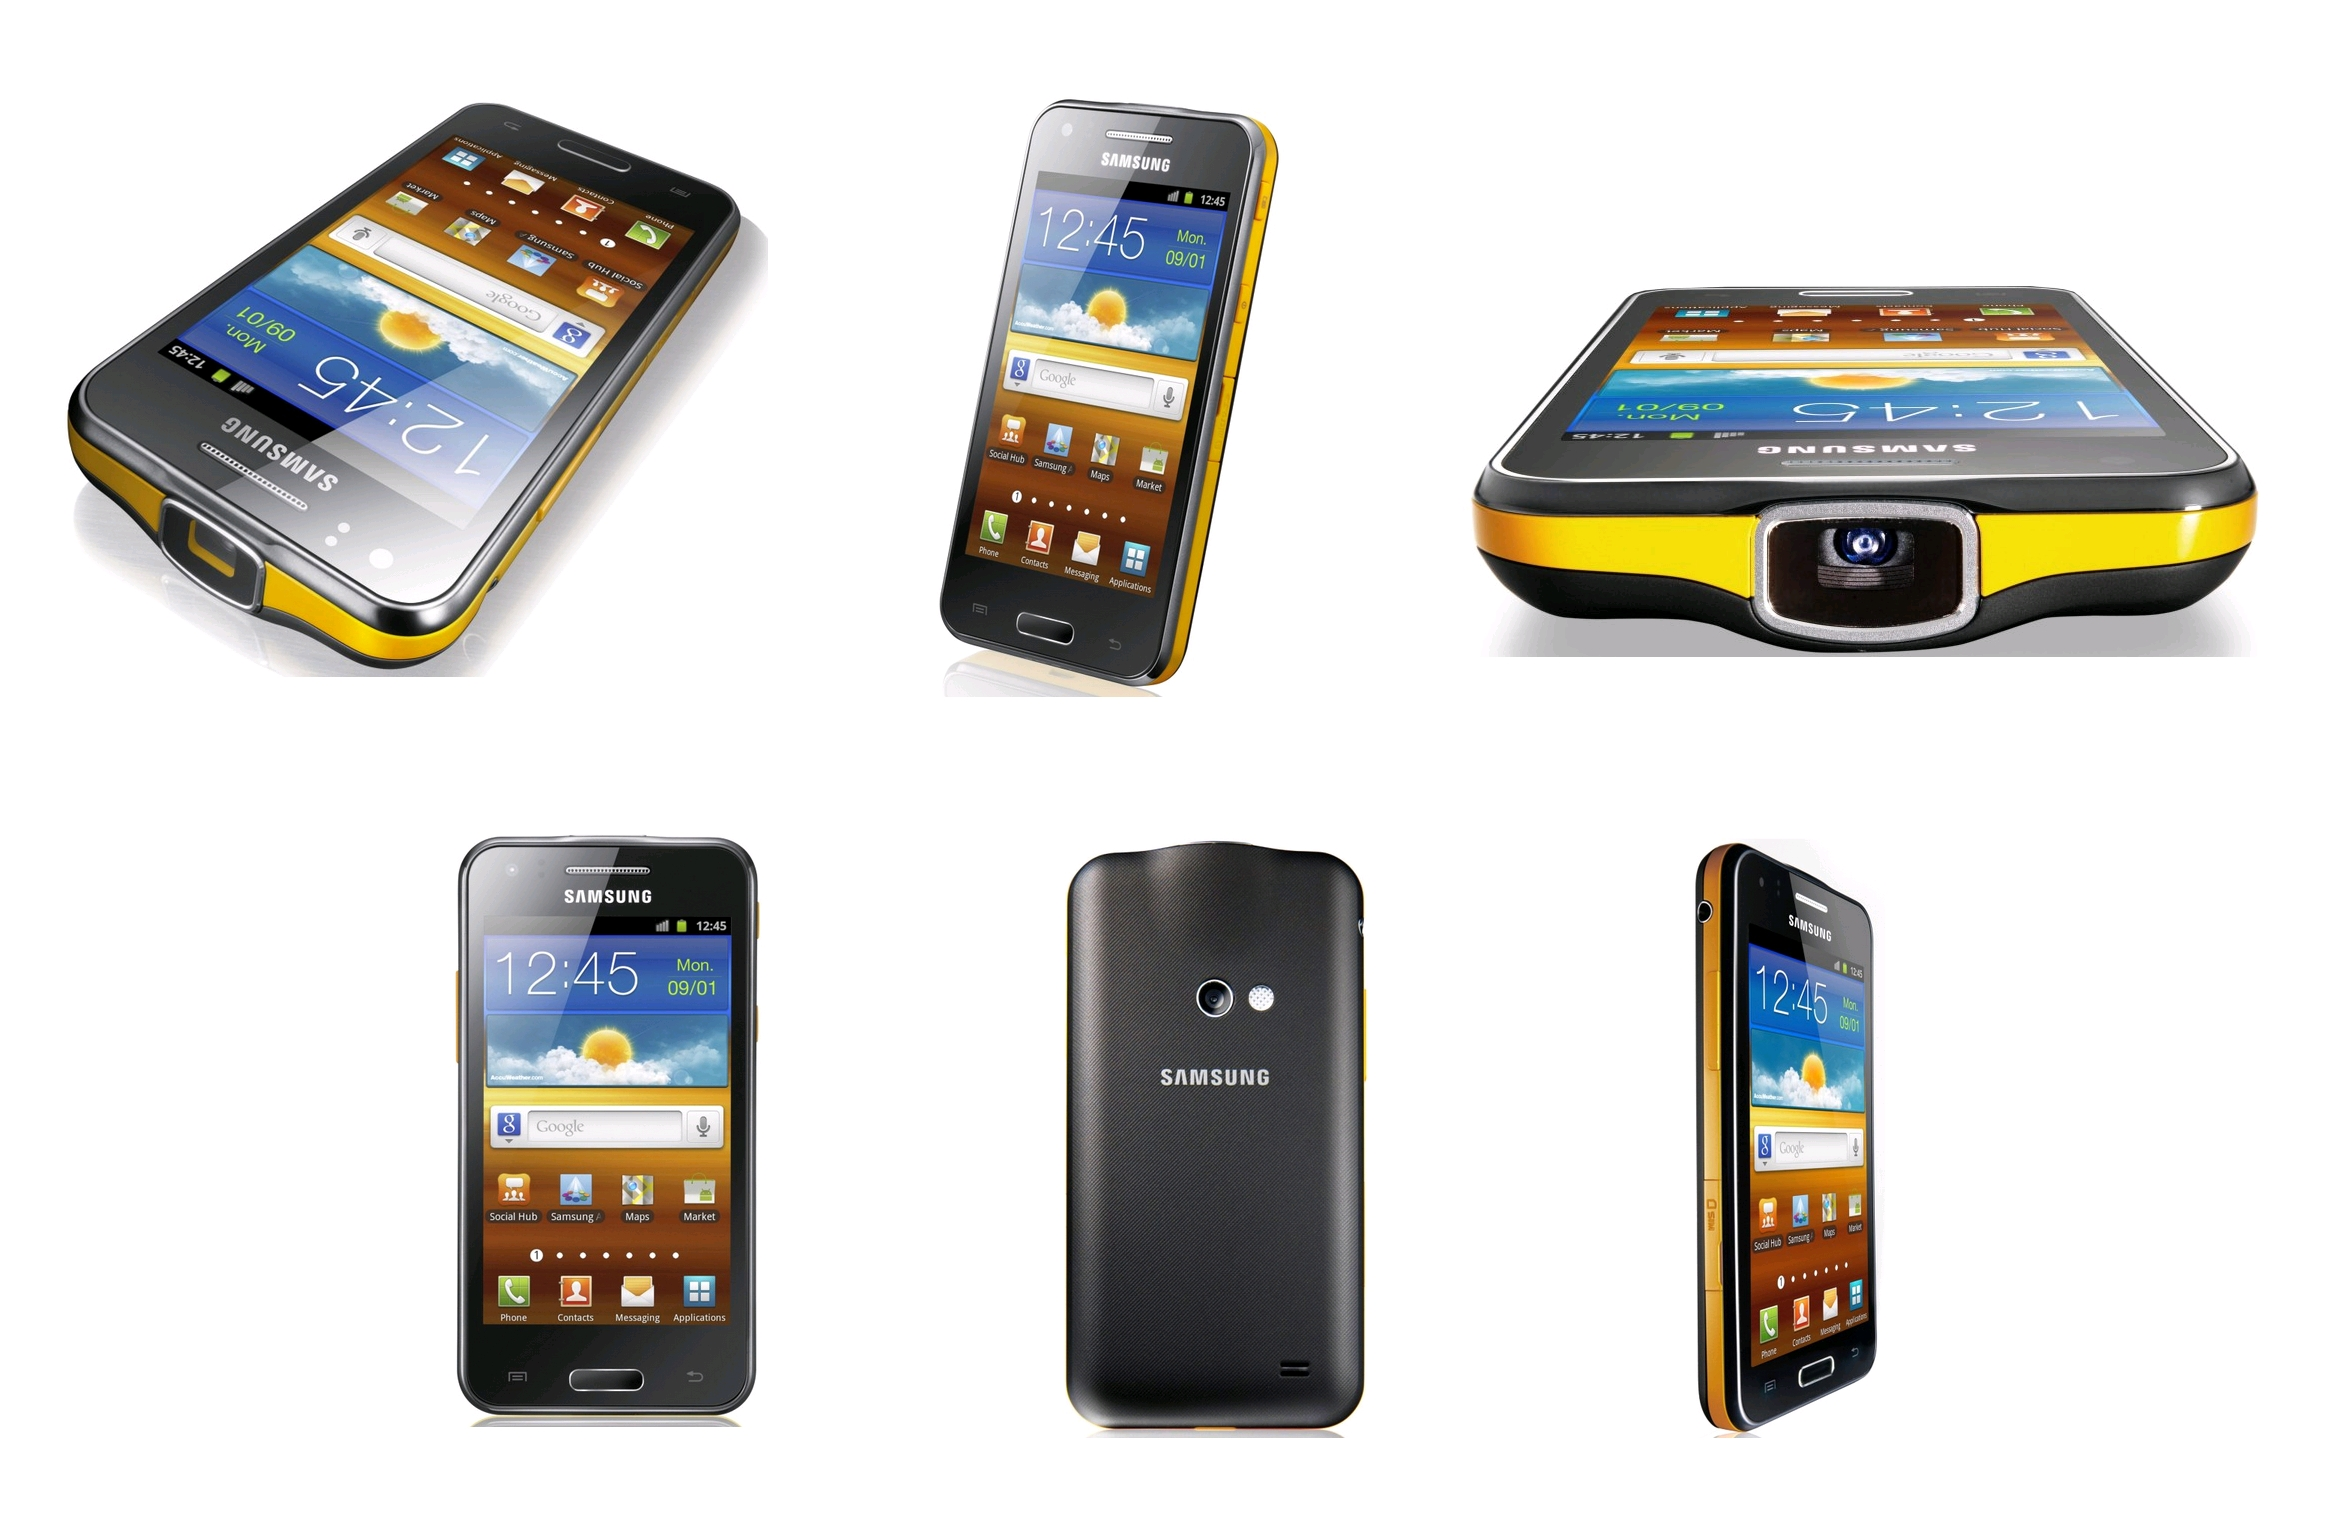 fa9ac17cec2 Samsung Galaxy Beam (Black/Yellow, KR Promotion) - EXPANSYS New Zealand